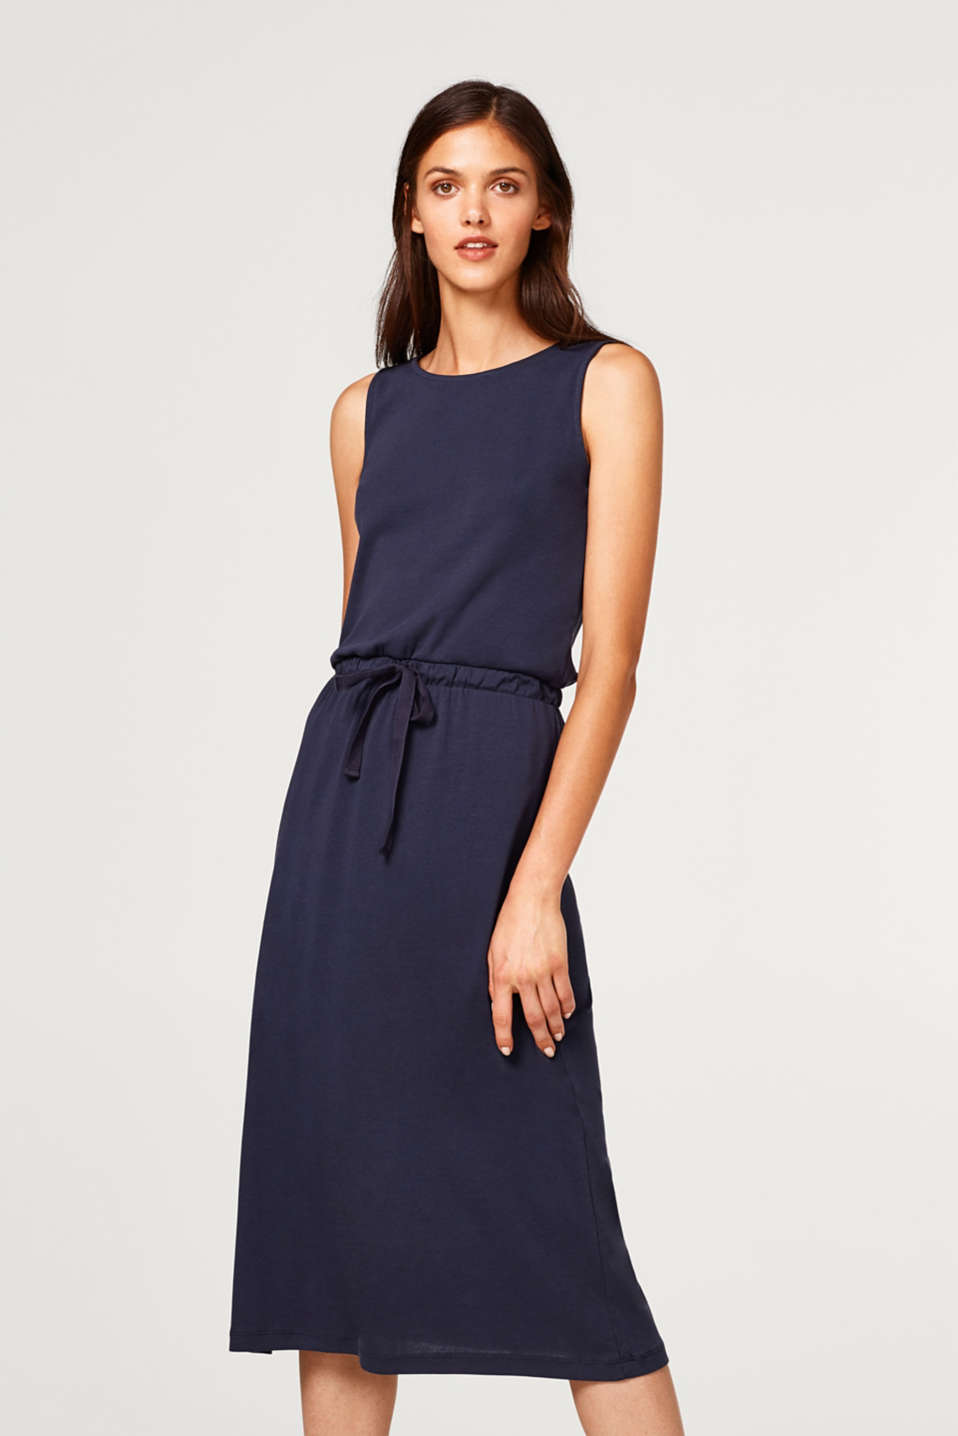 Esprit - Midi dress with a drawstring, 100% cotton